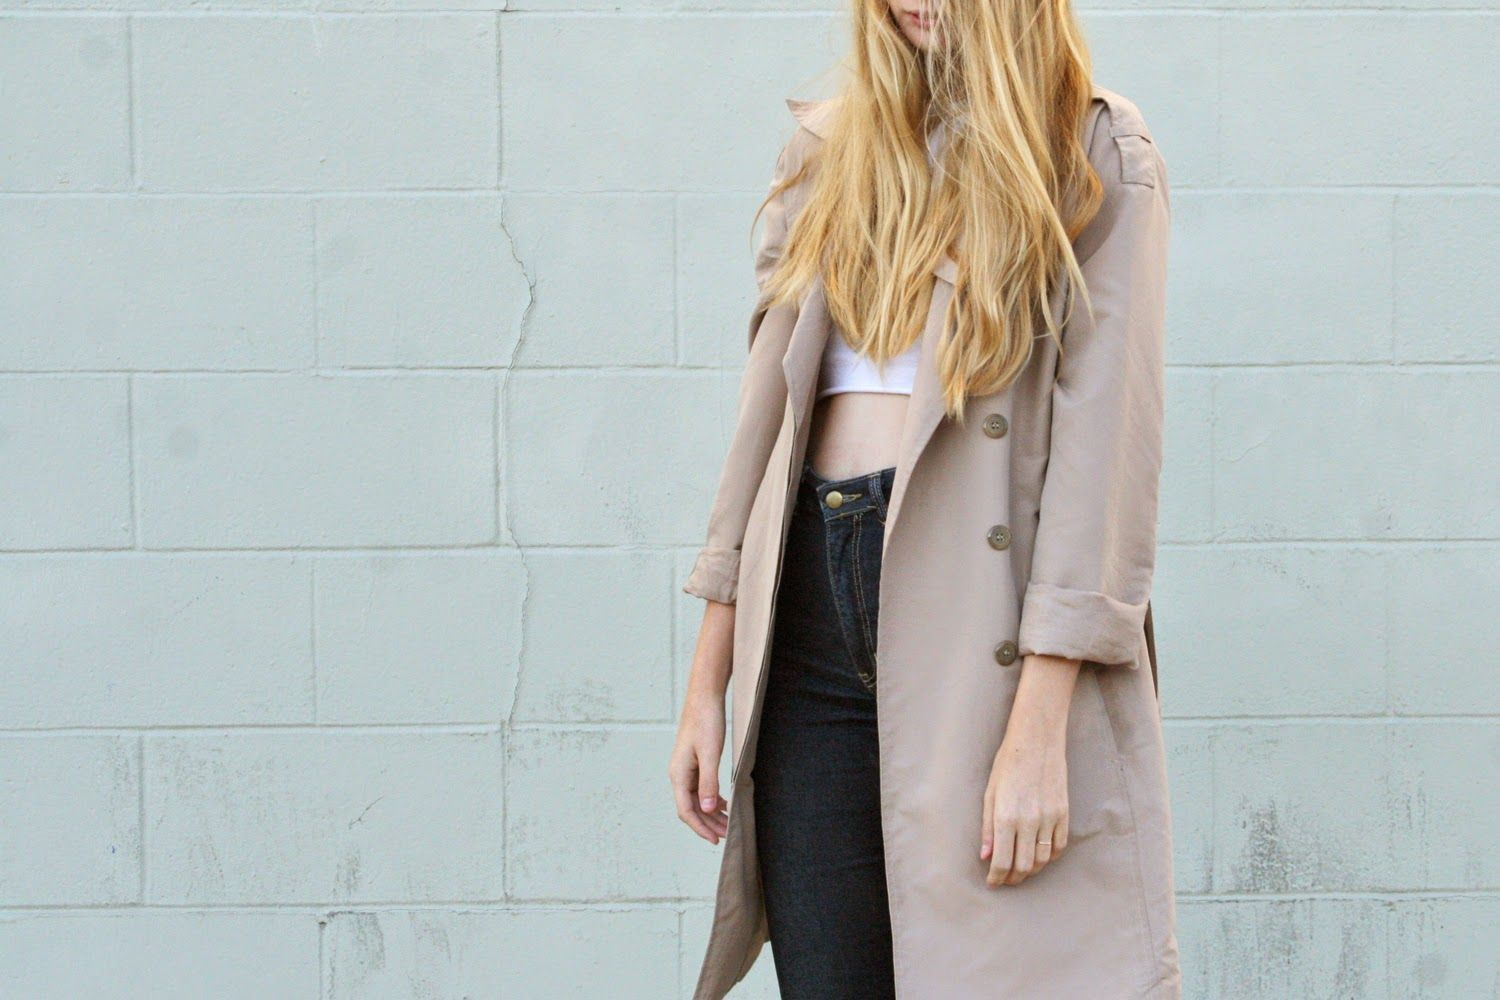 thetimeisgrey in vintage trench, crop top and denim #style #fall